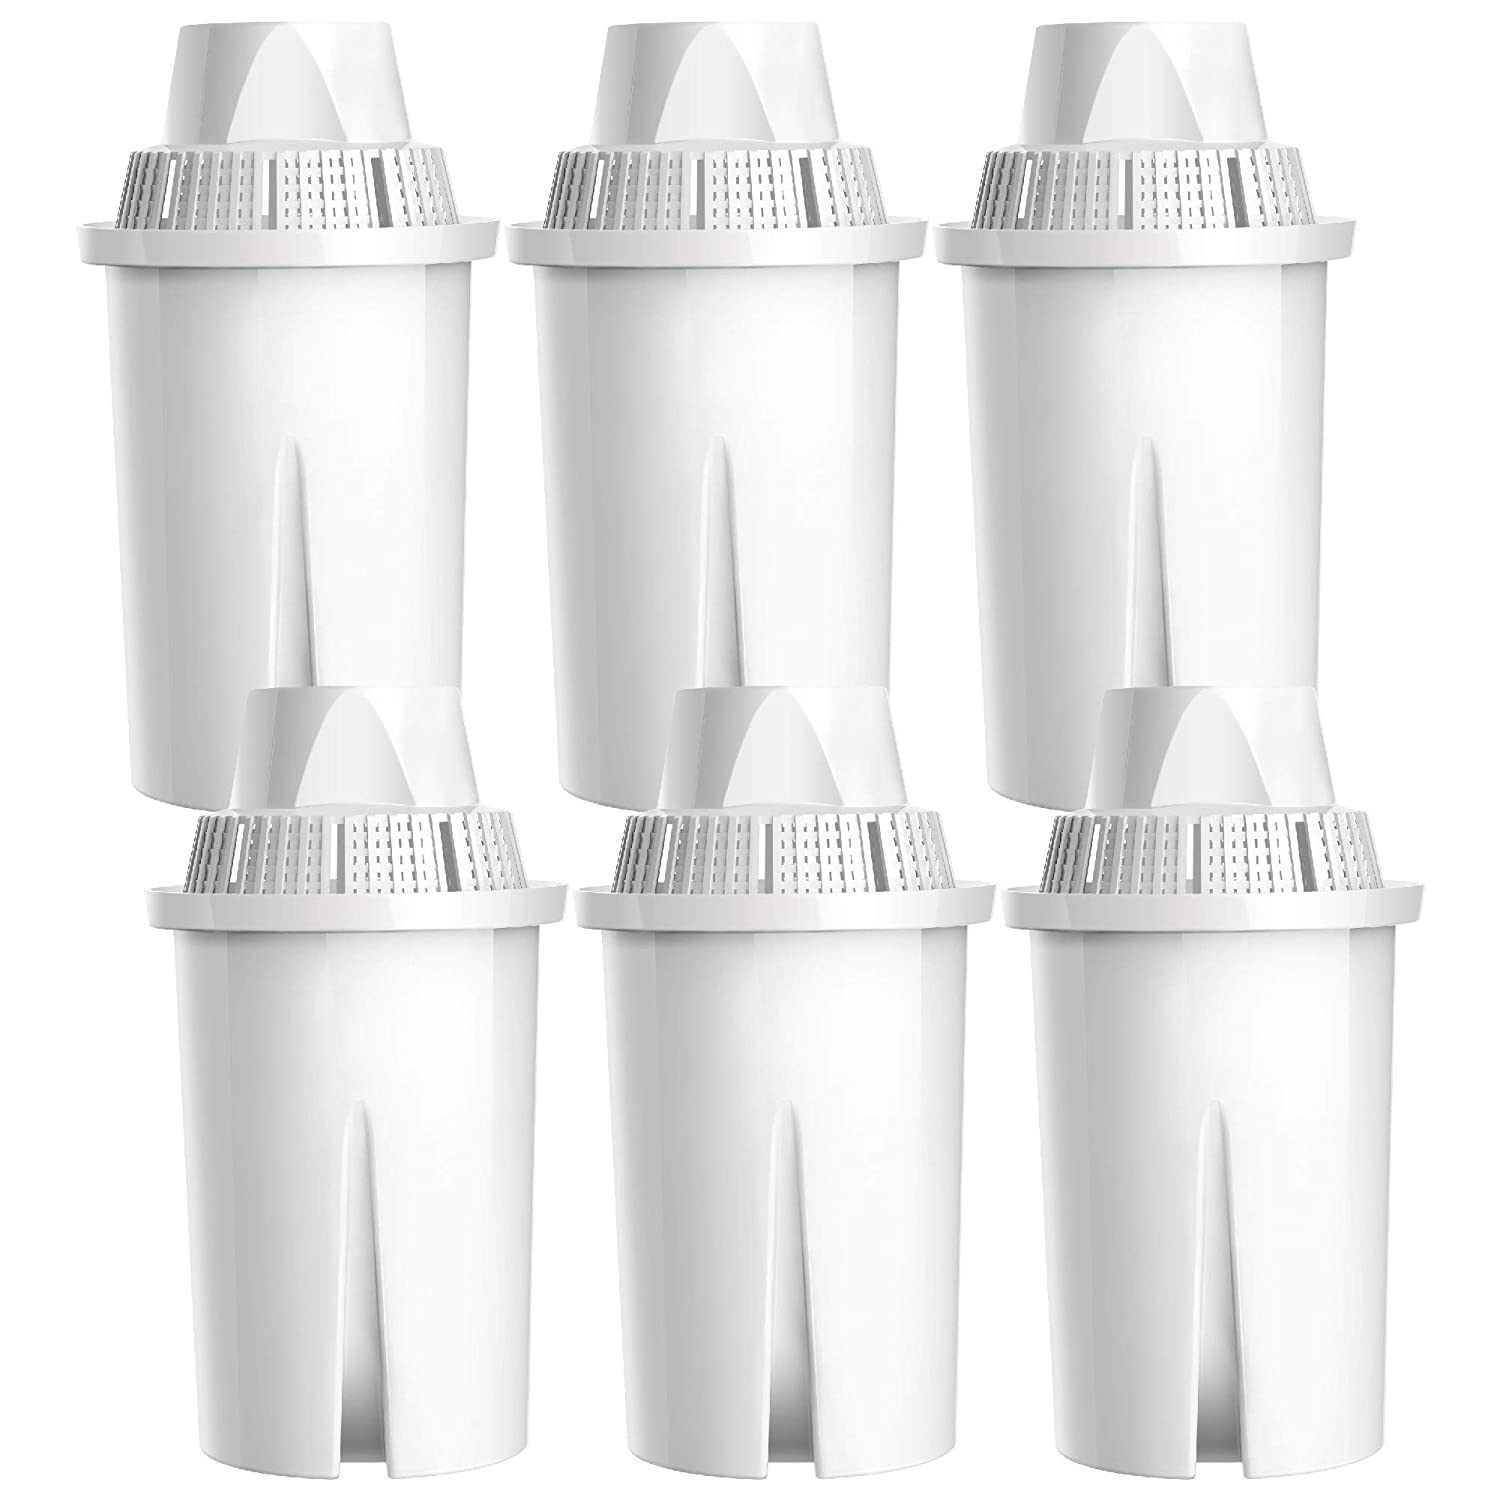 AQUA CREST TÜV SÜD Certified Pitcher Water Filter, Fits Brita Classic 35557, OB03, Mavea 107007, Compatible with Brita Pitchers Grand, Lake, Capri and More, Lead Removal (Pack of 6)